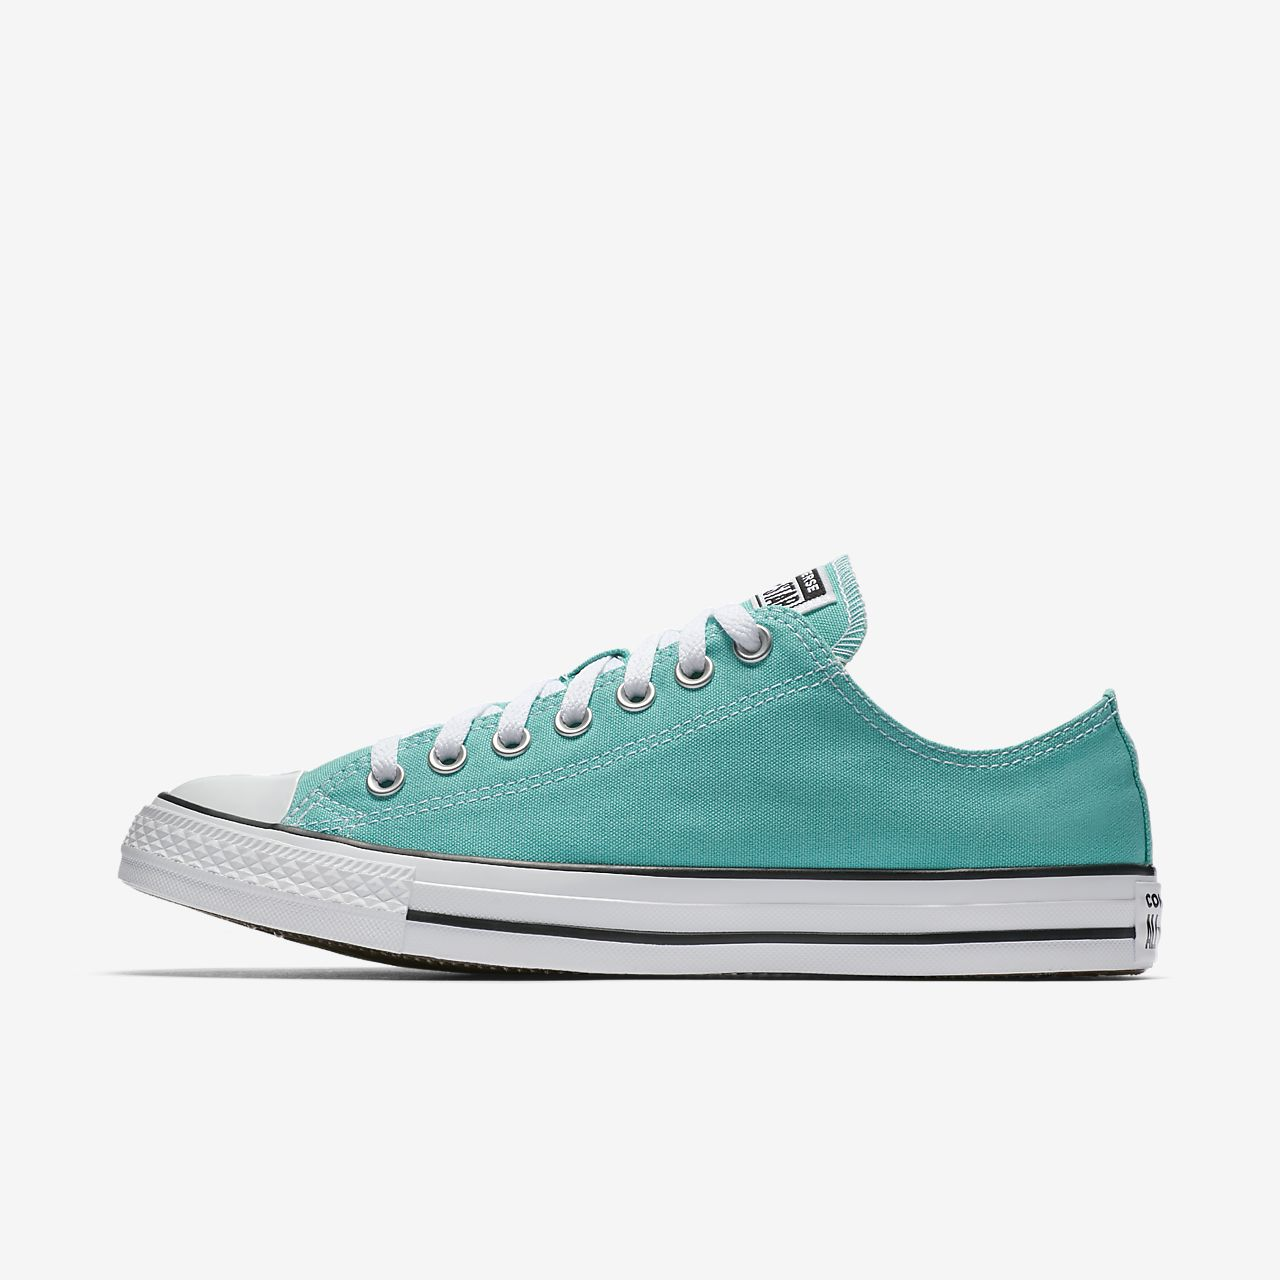 Converse Chuck Taylor All Star Seasonal Colors Low Top Unisex Shoe